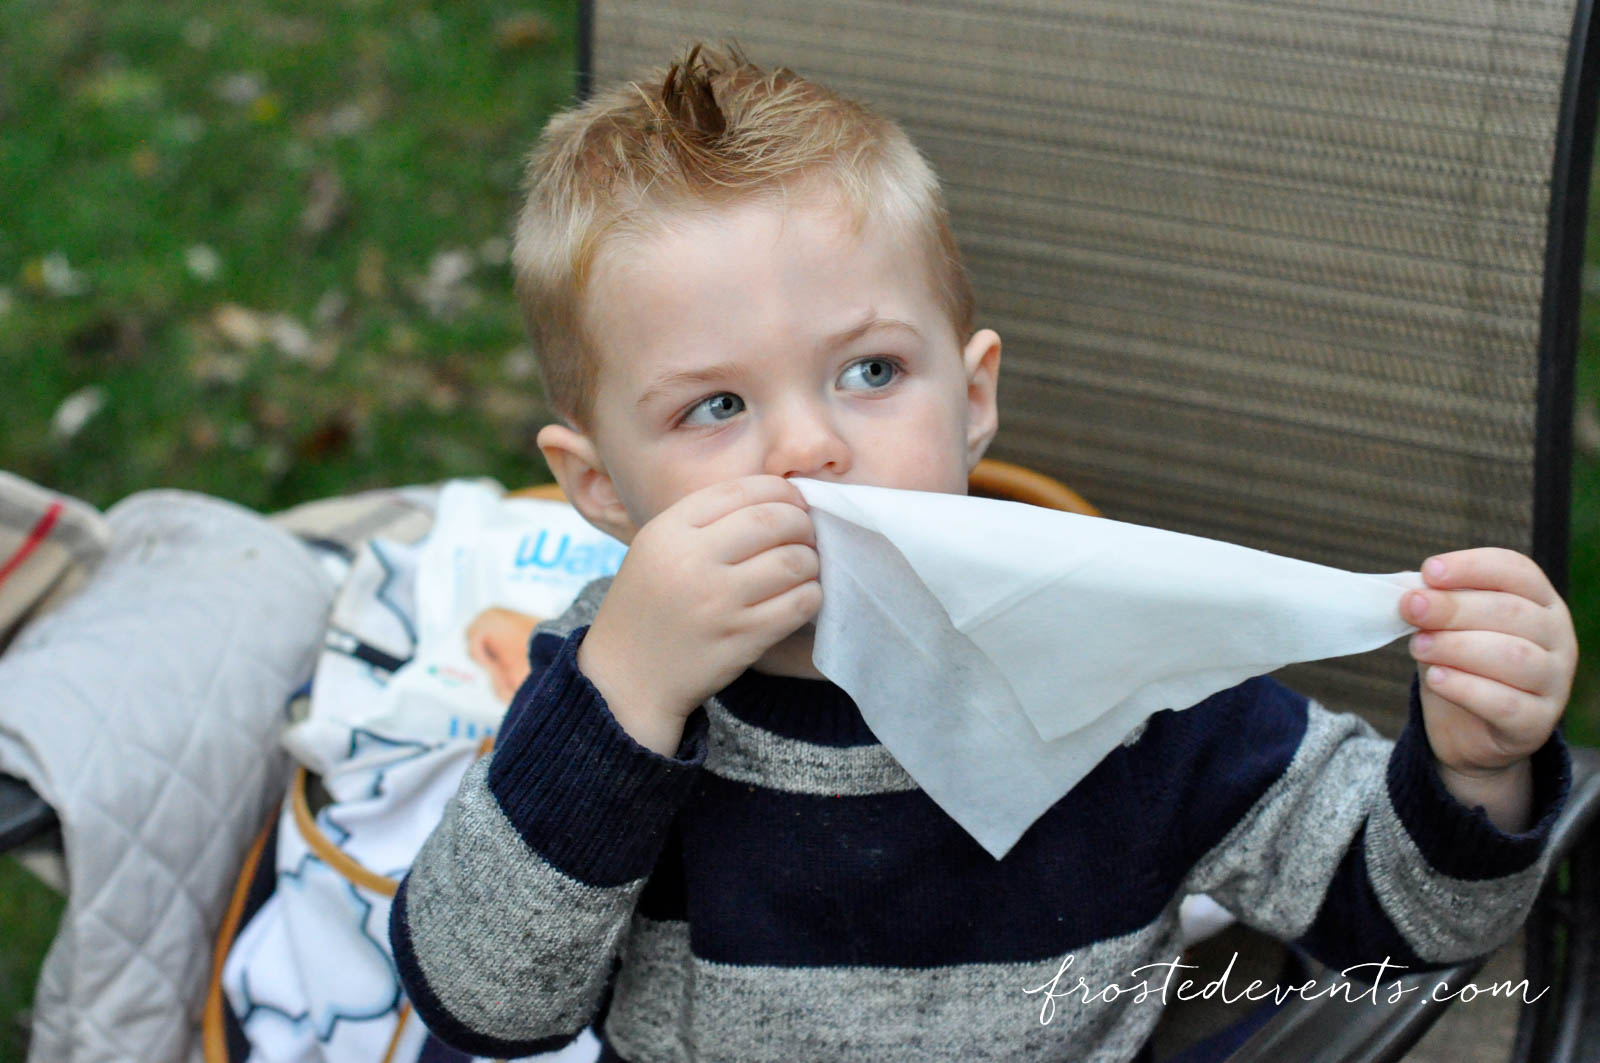 Outdoor Activities with Kids Moms Must Haves for Busy Toddlers Water Wipes frostedevents.com